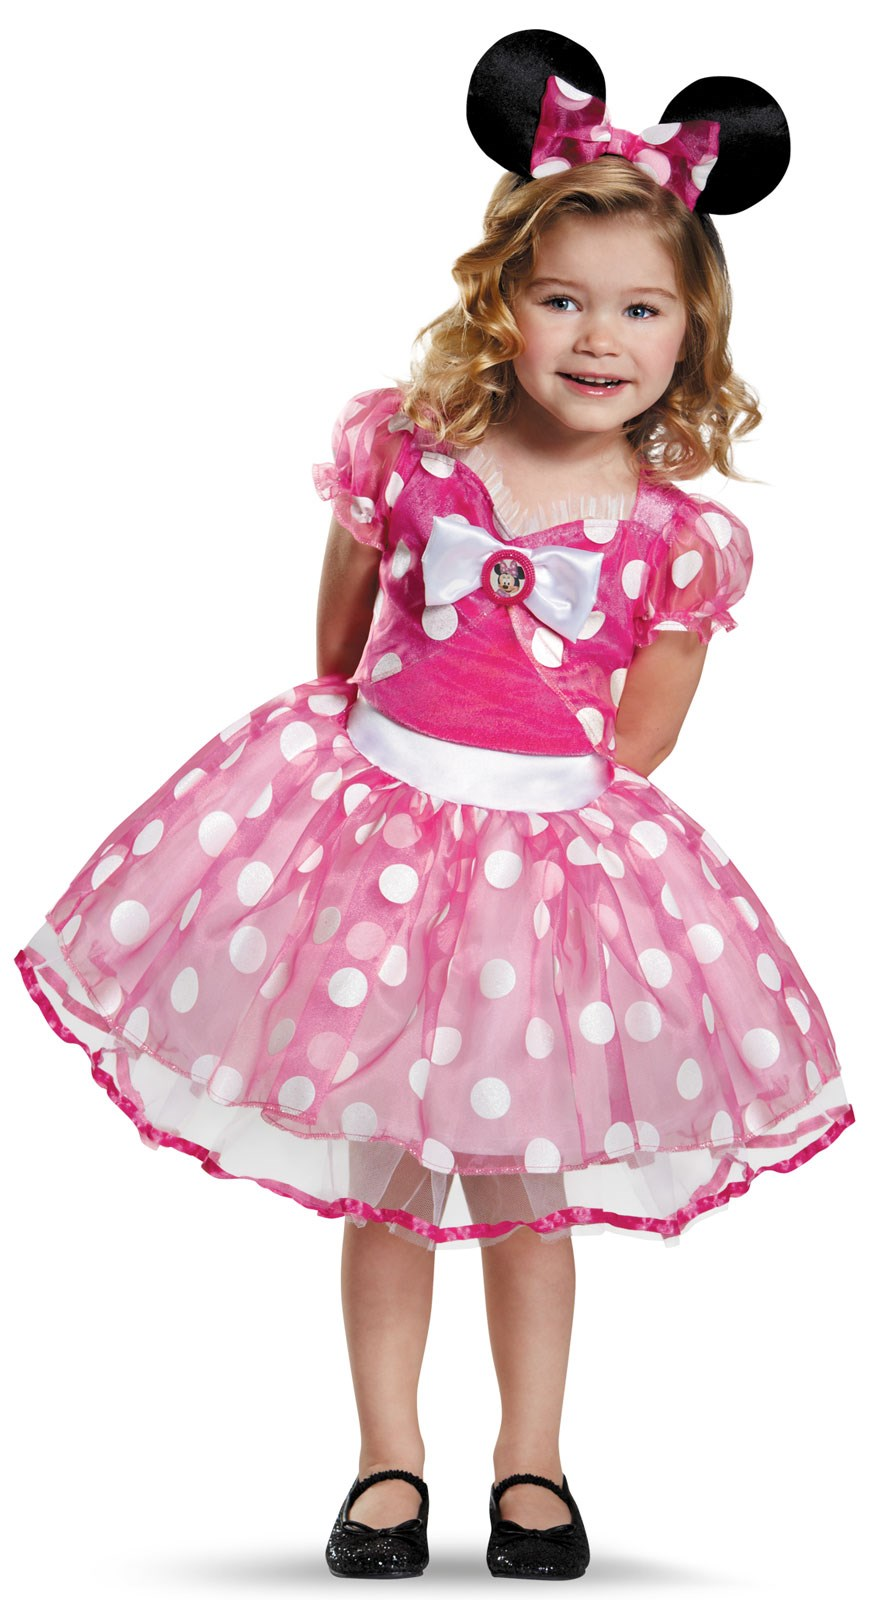 Pink Minnie Mouse Deluxe Tutu Costume For Toddlers